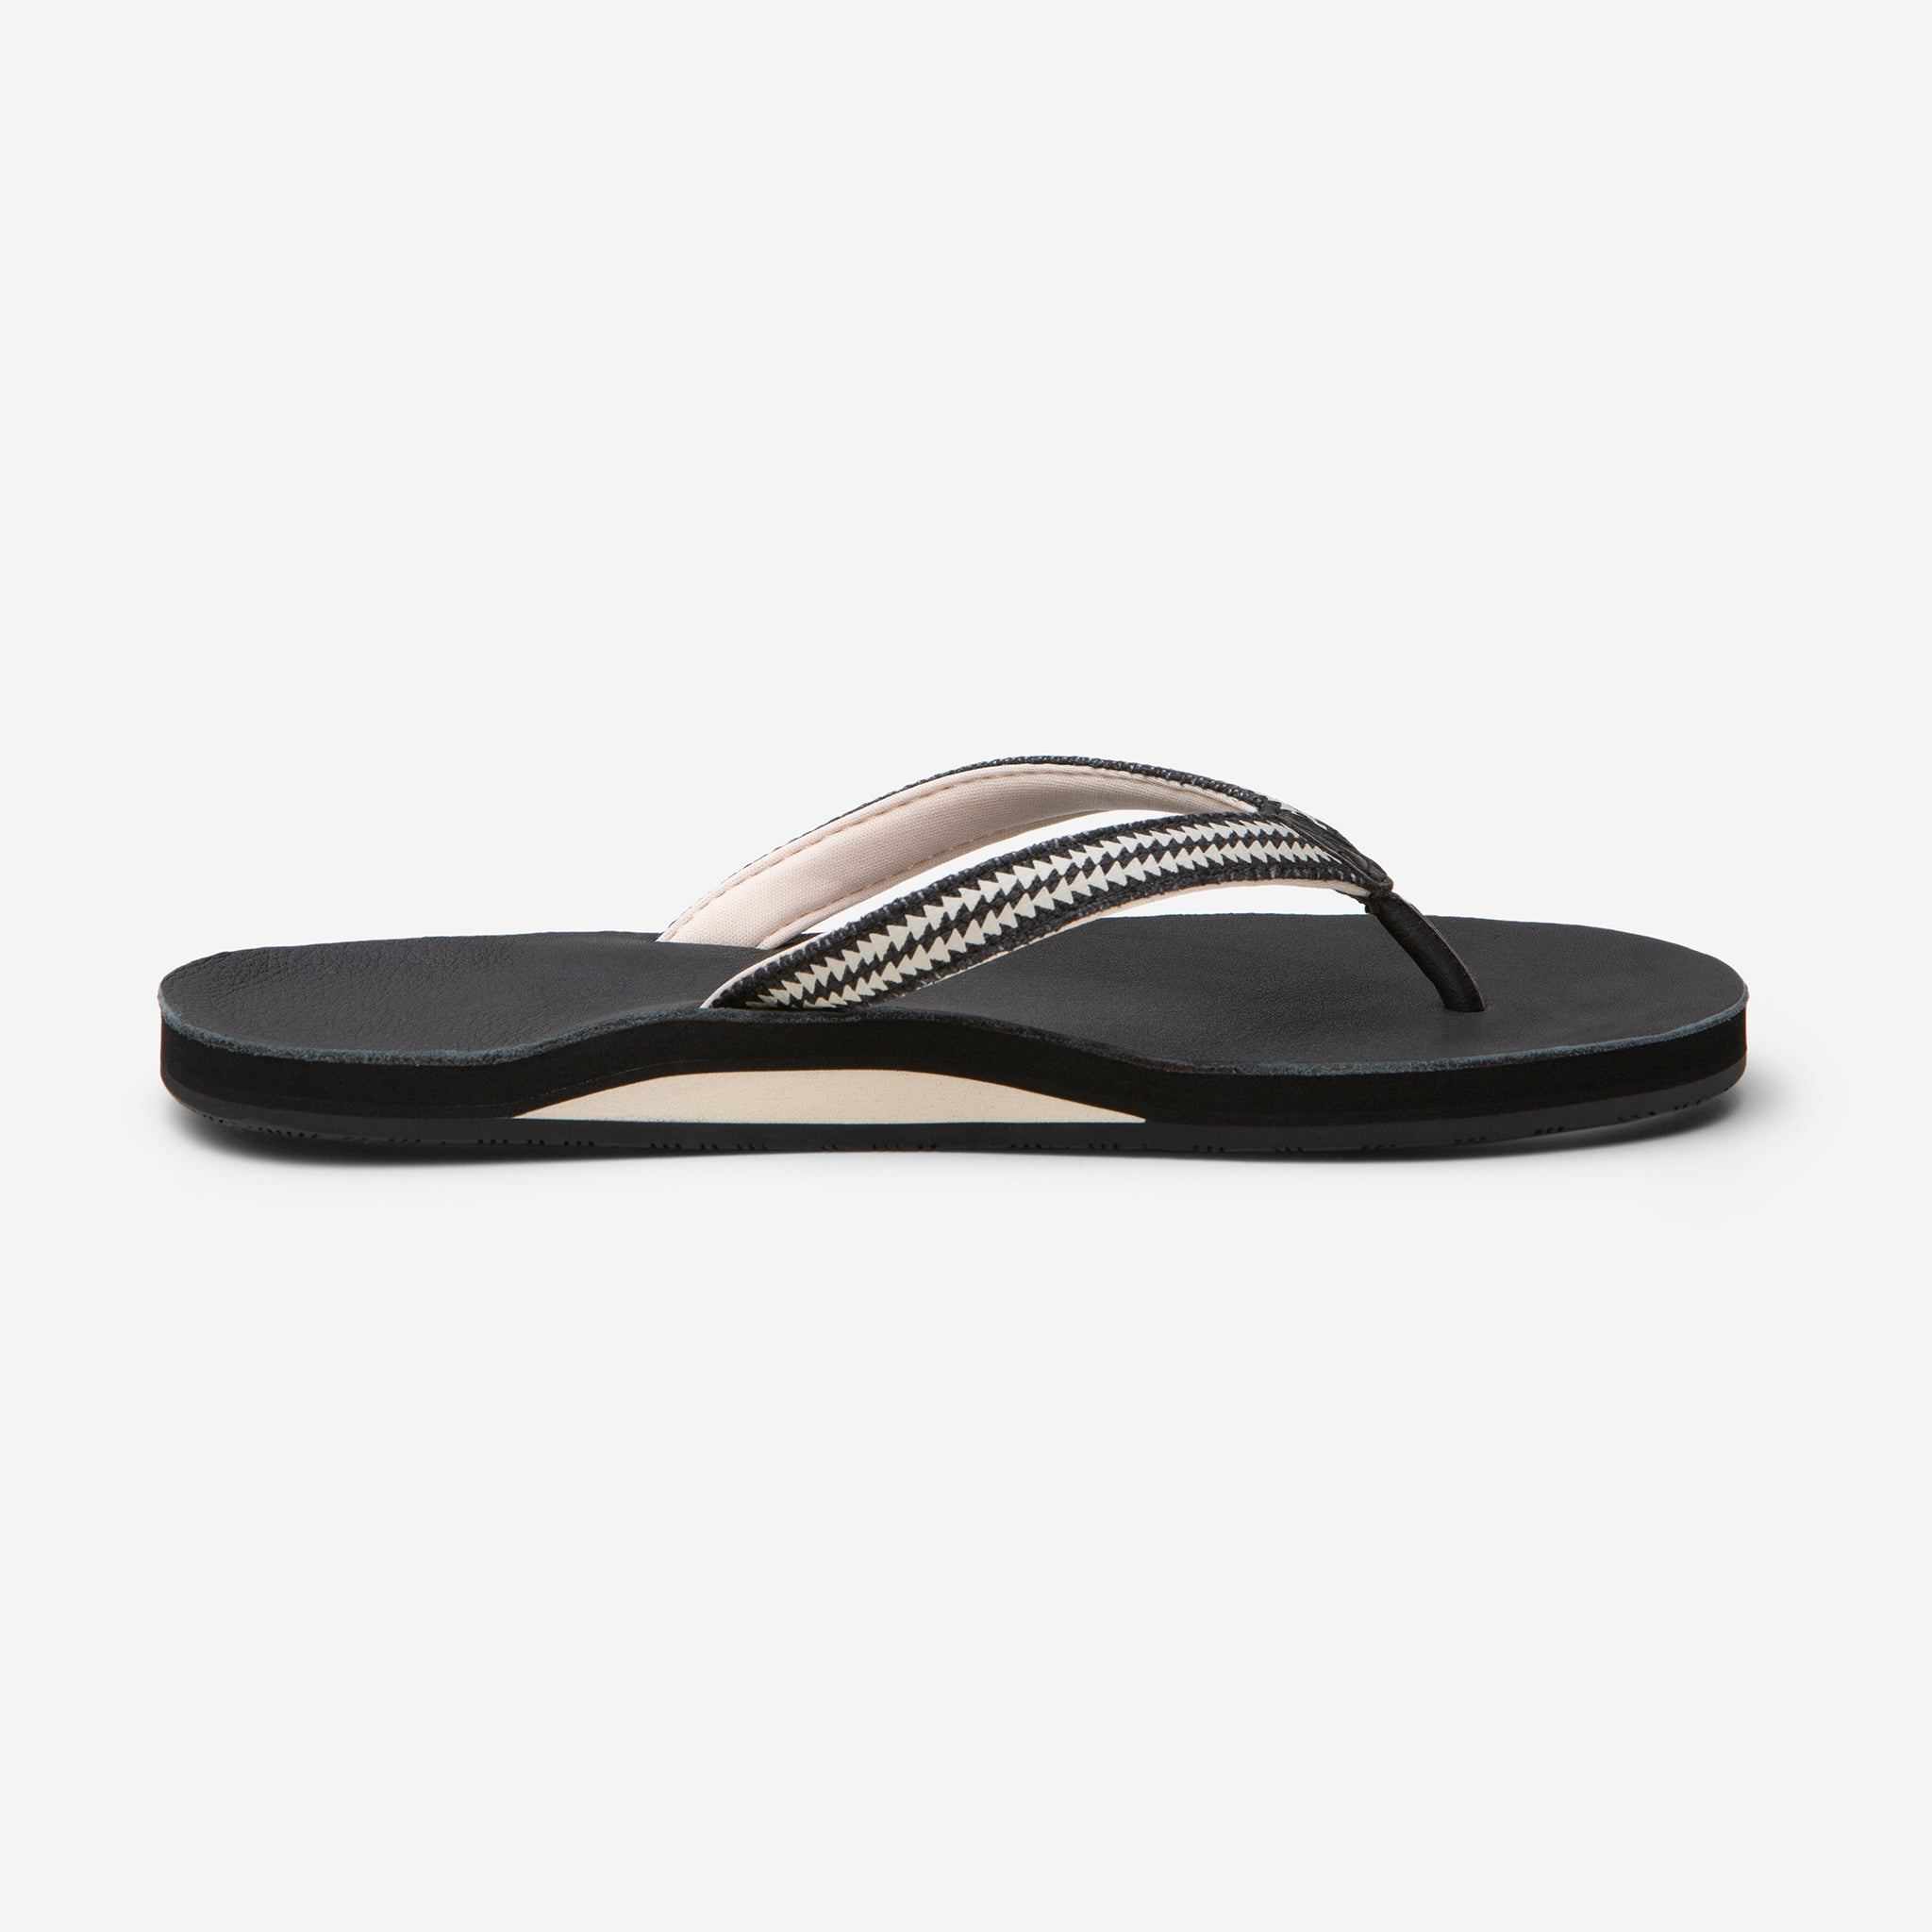 side profile of Hari Mari Women's Fields Flip Flop in Black  on white background